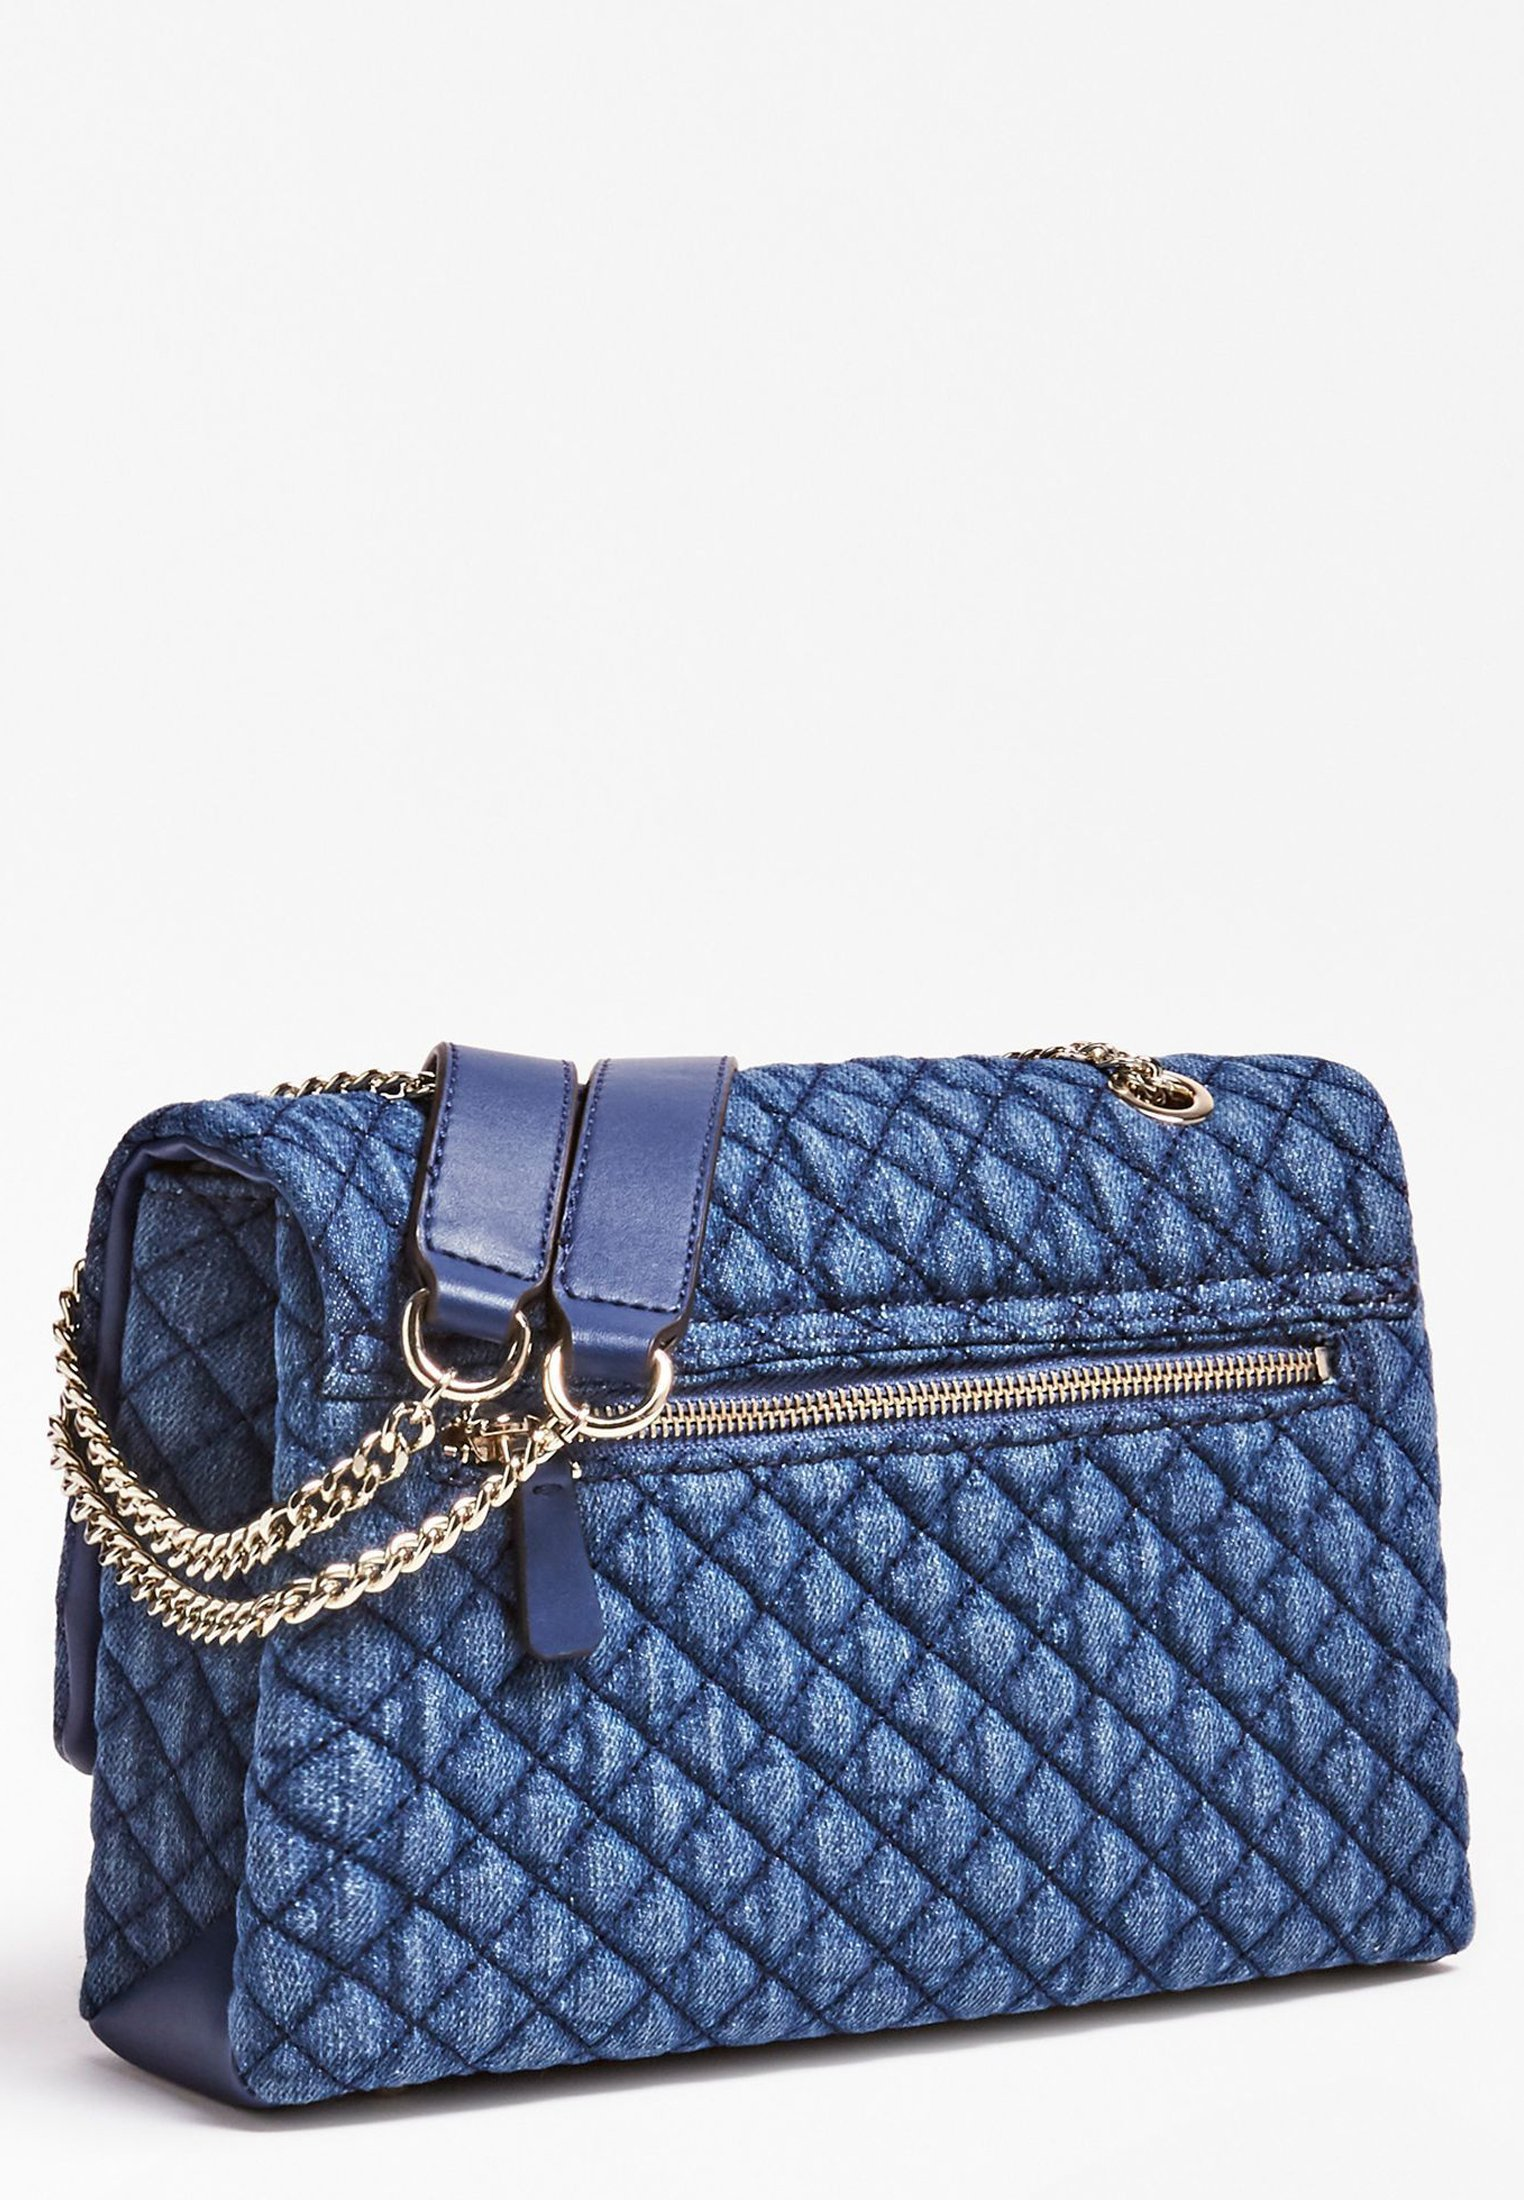 Guess Passion - Handtasche Blue Black Friday